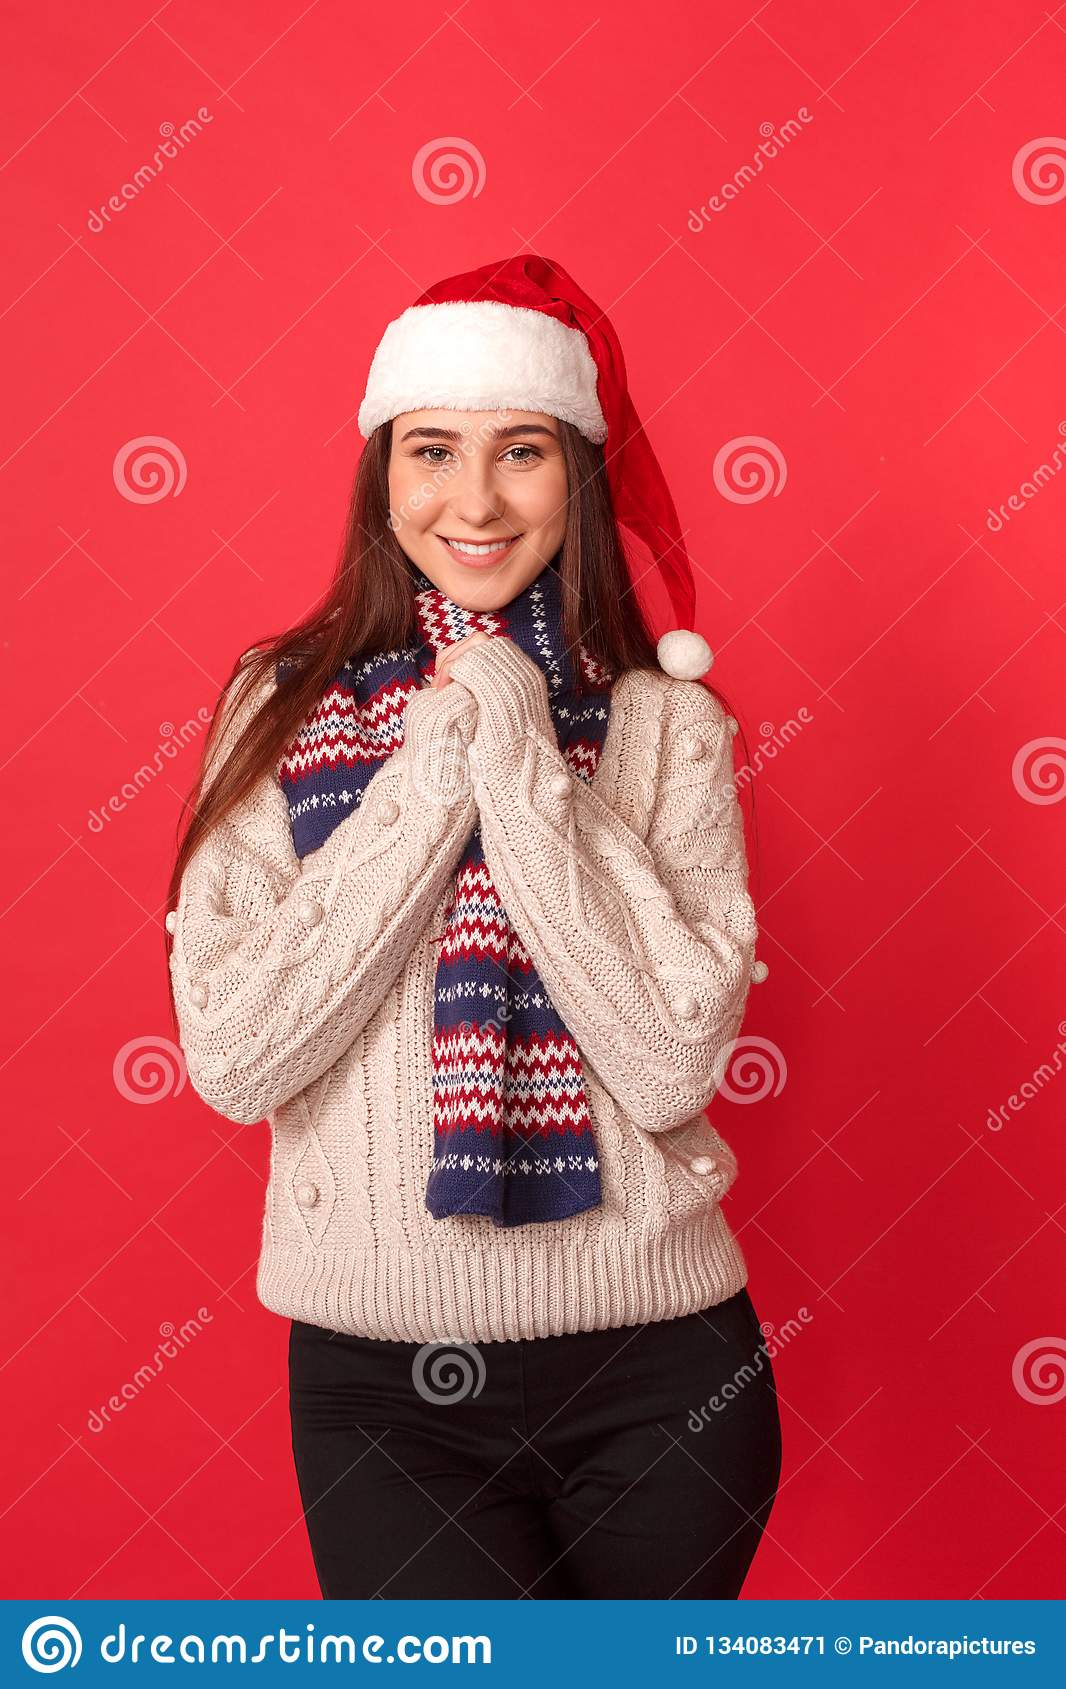 Waiting for Celebration. Young woman in scarf and santa hat standing isolated on red hands together smiling happy